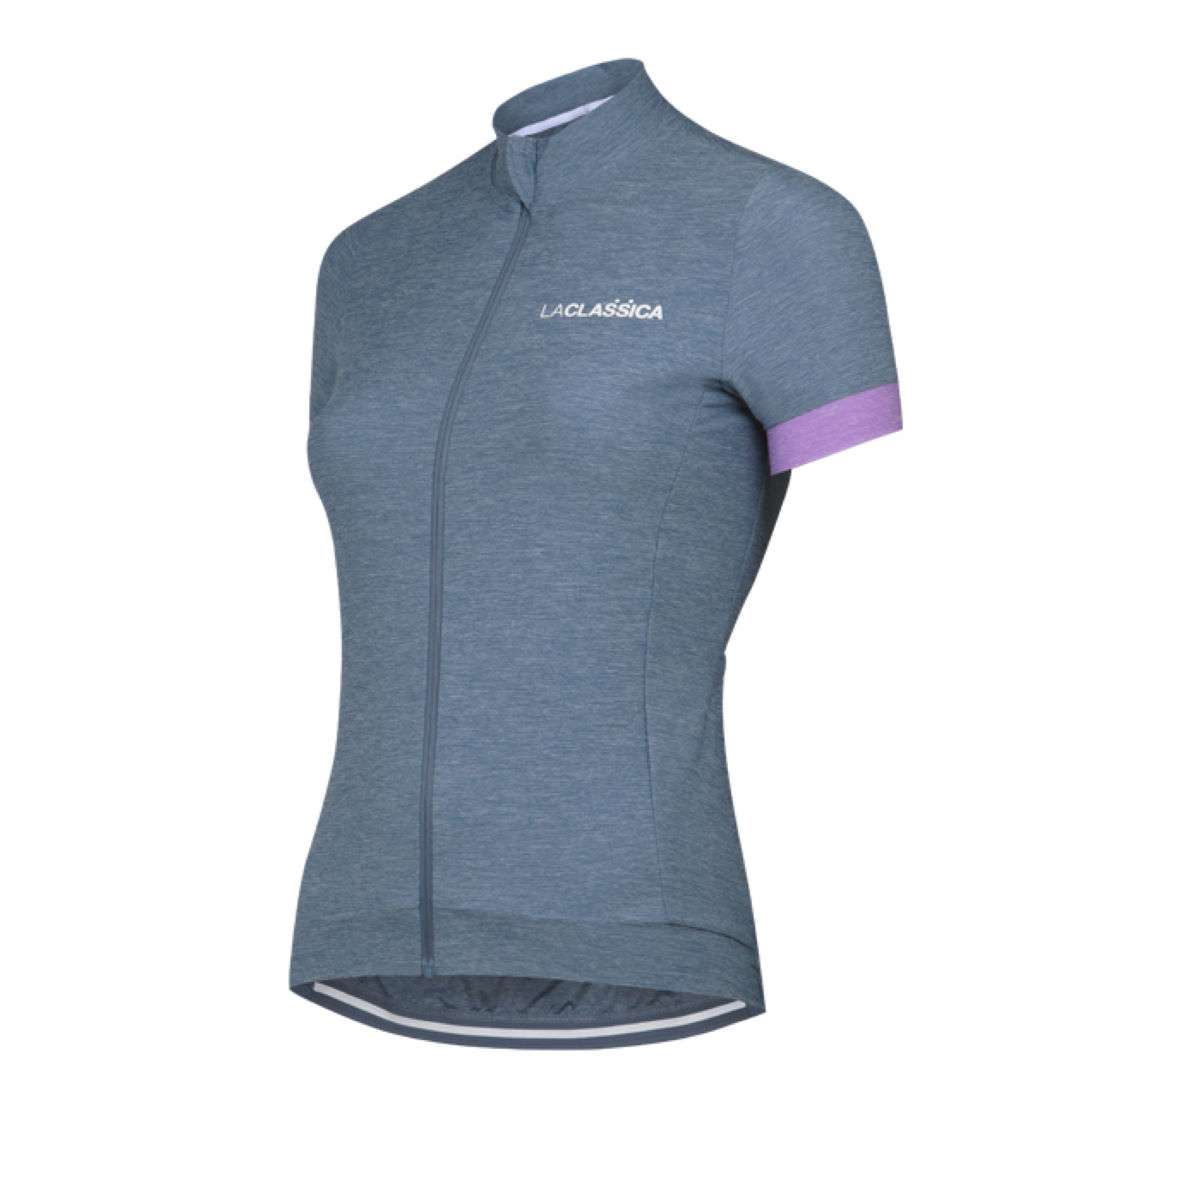 Maillot Femme LaClassica Extra Light - XS Deep Night Maillots vélo à manches courtes